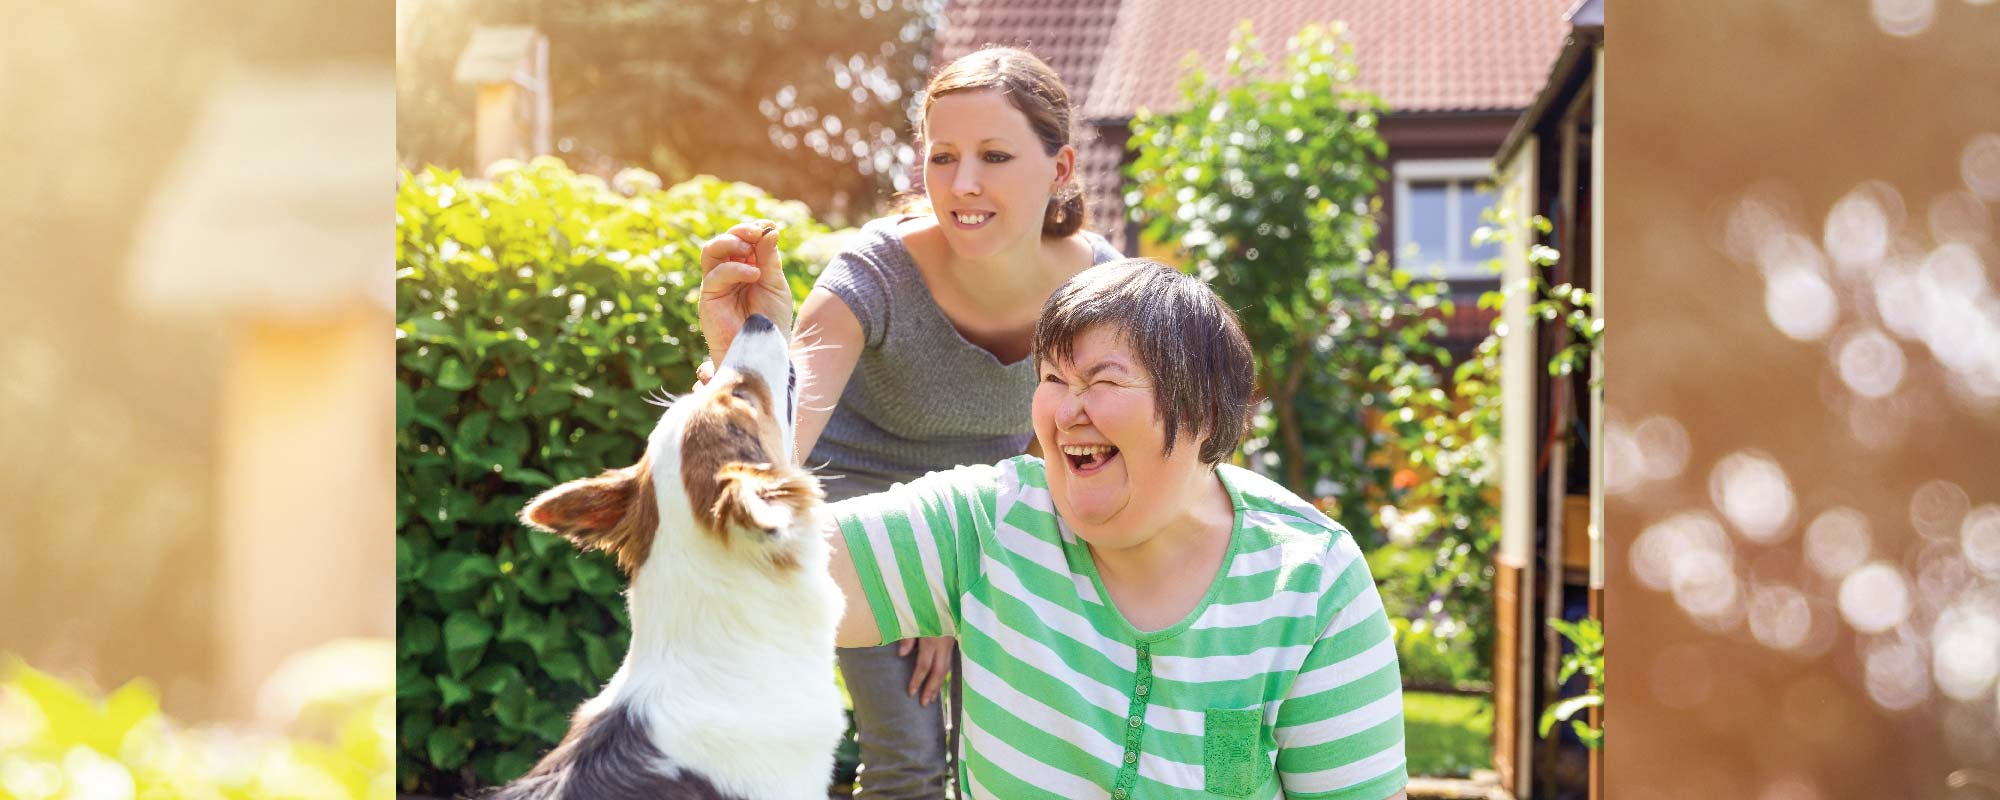 Person with disability and carer patting dog outdoors